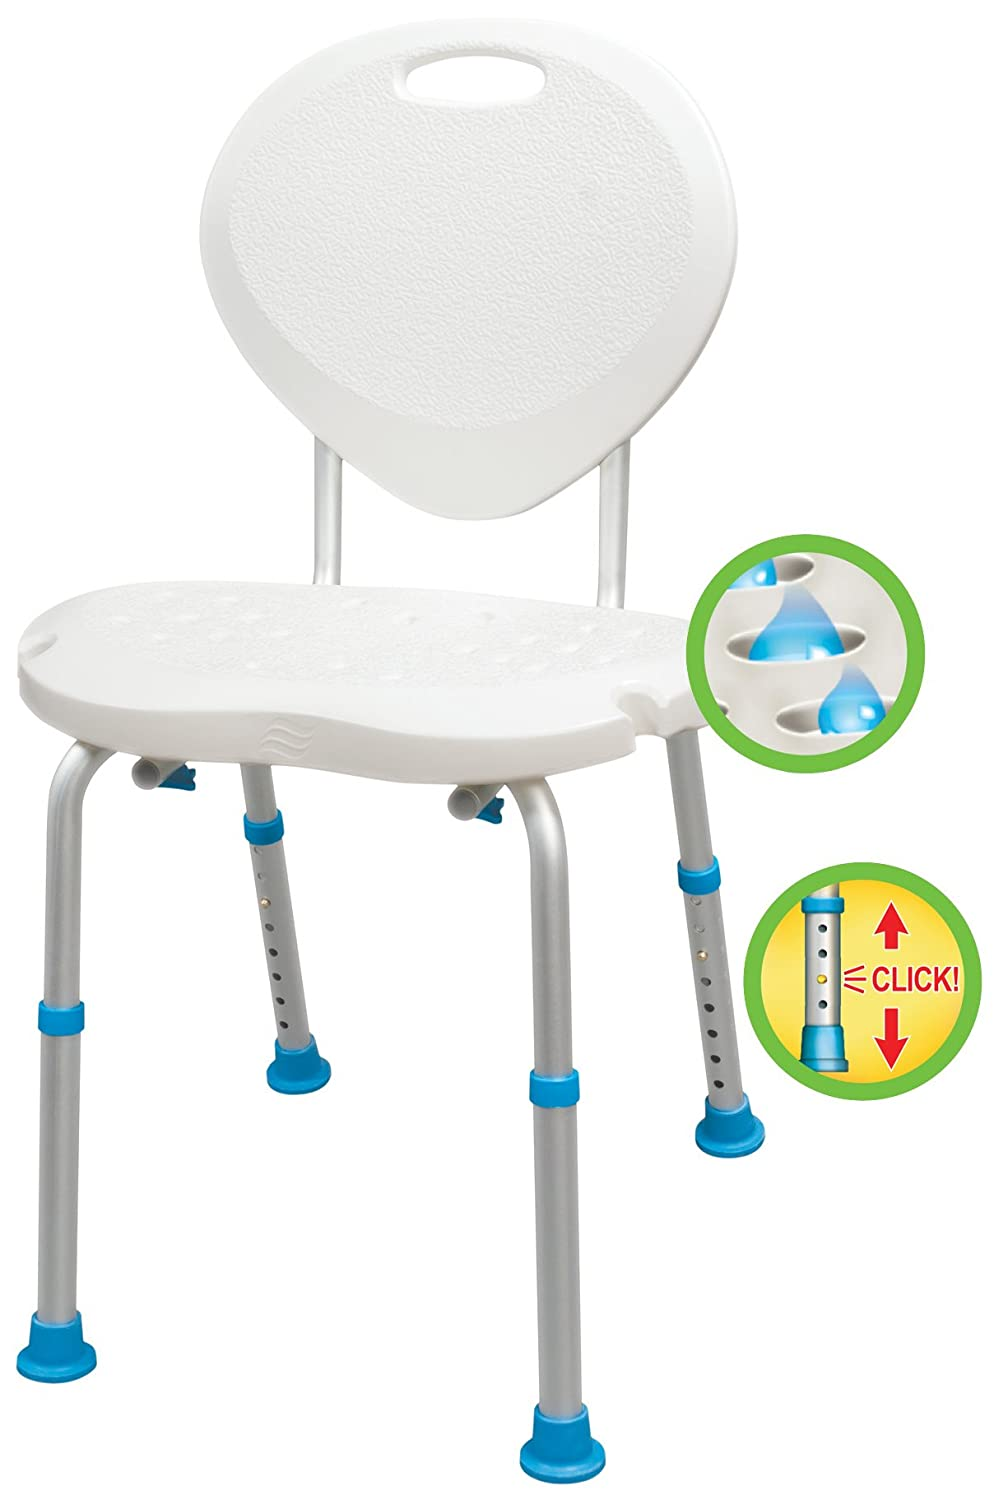 Amazon.com: Aquasense Adjustable Bath and Shower Chair with Non ...